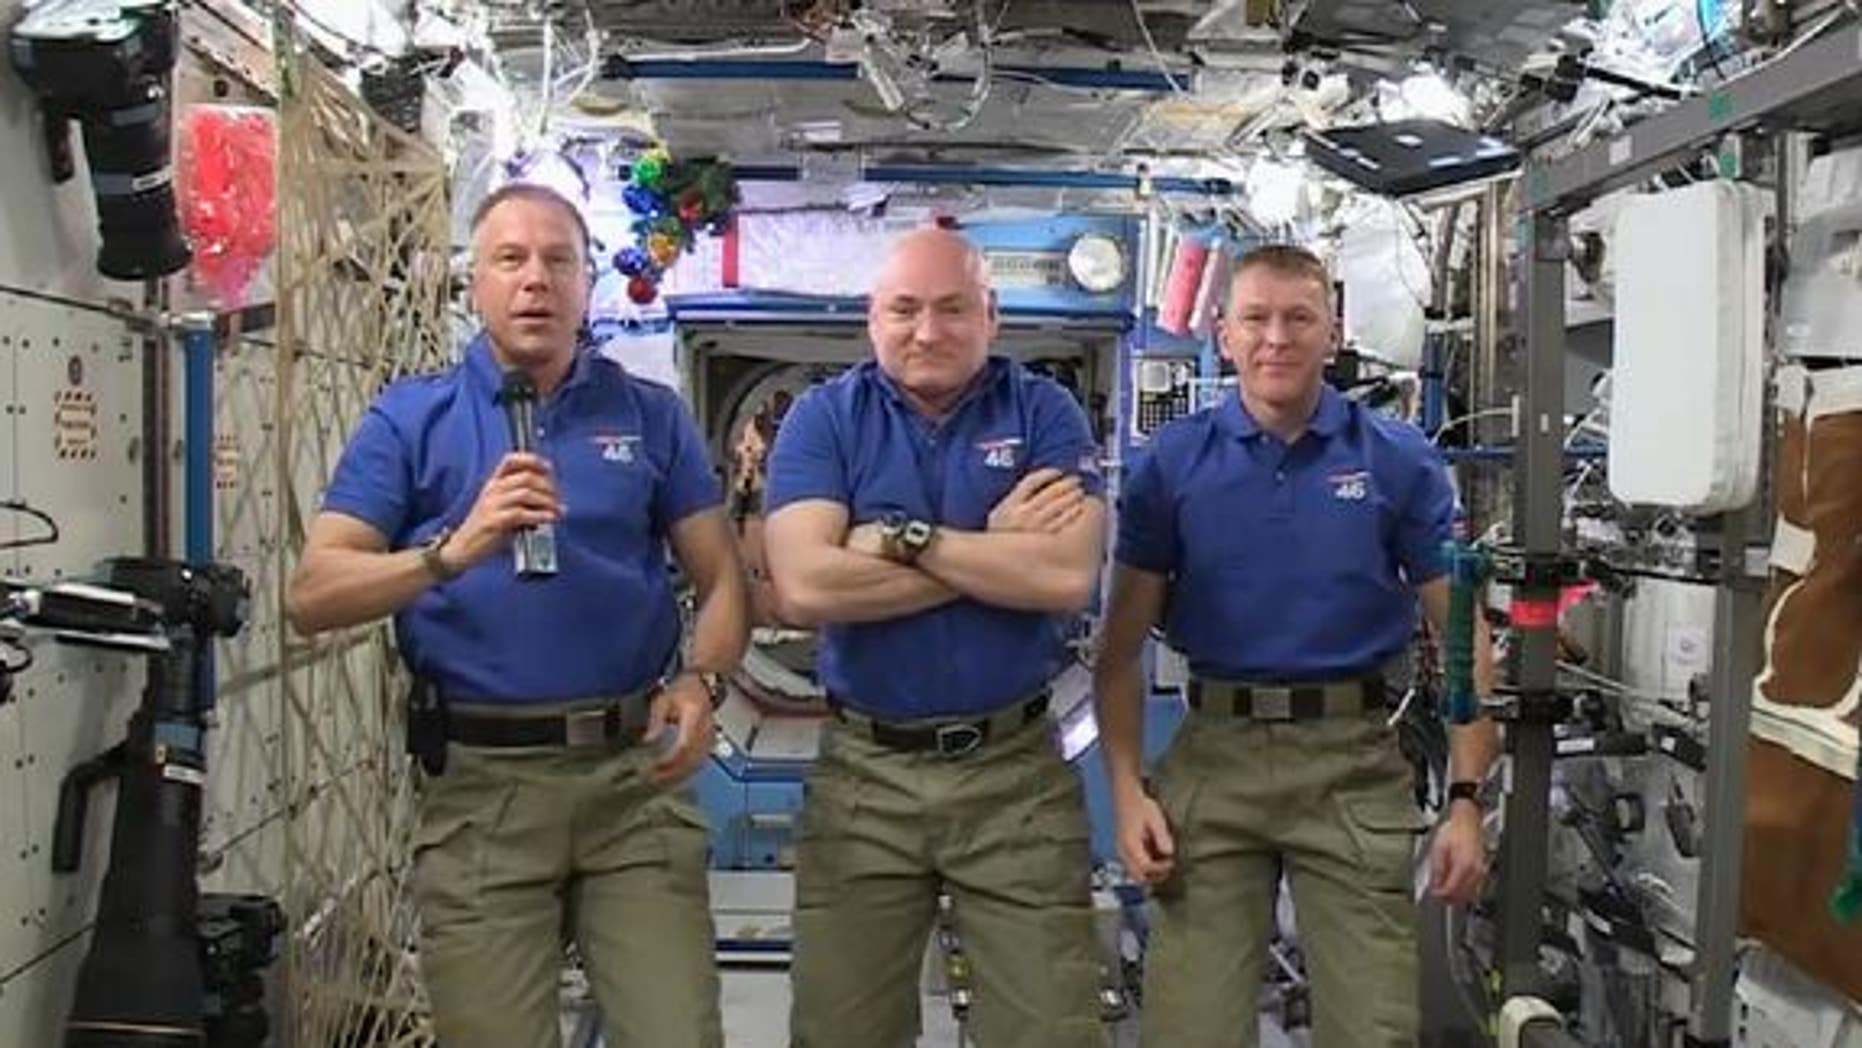 Astronauts Scott Kelly and Tim Kopra of NASA, and Tim Peake of the European Space Agency delivered a holiday message from the International Space Station on Dec. 18. The station Christmas tree can be seen just to the right of Kopra's head.